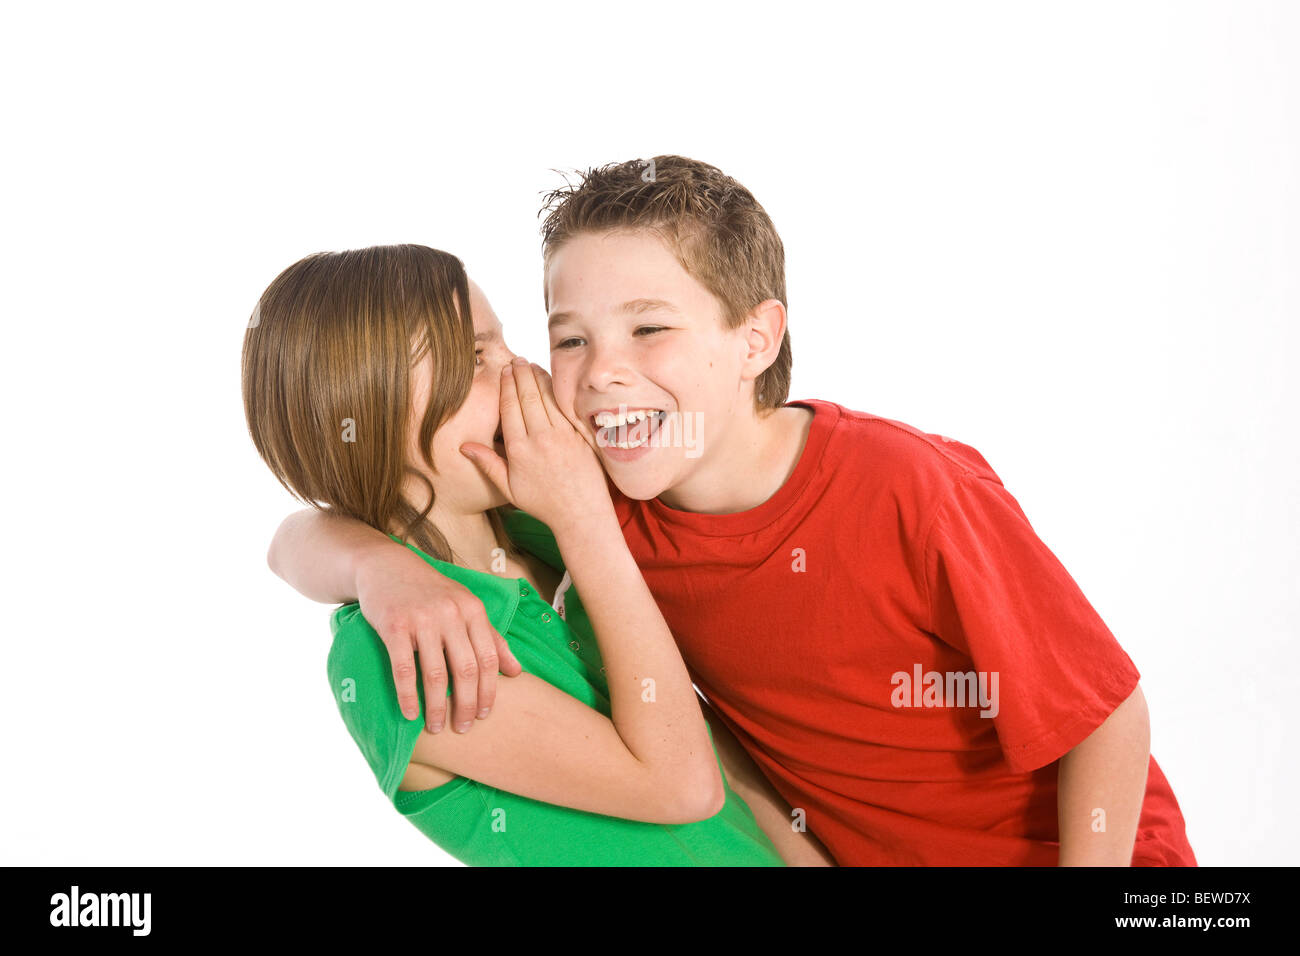 girl whispering something in a boy's ear Stock Photo